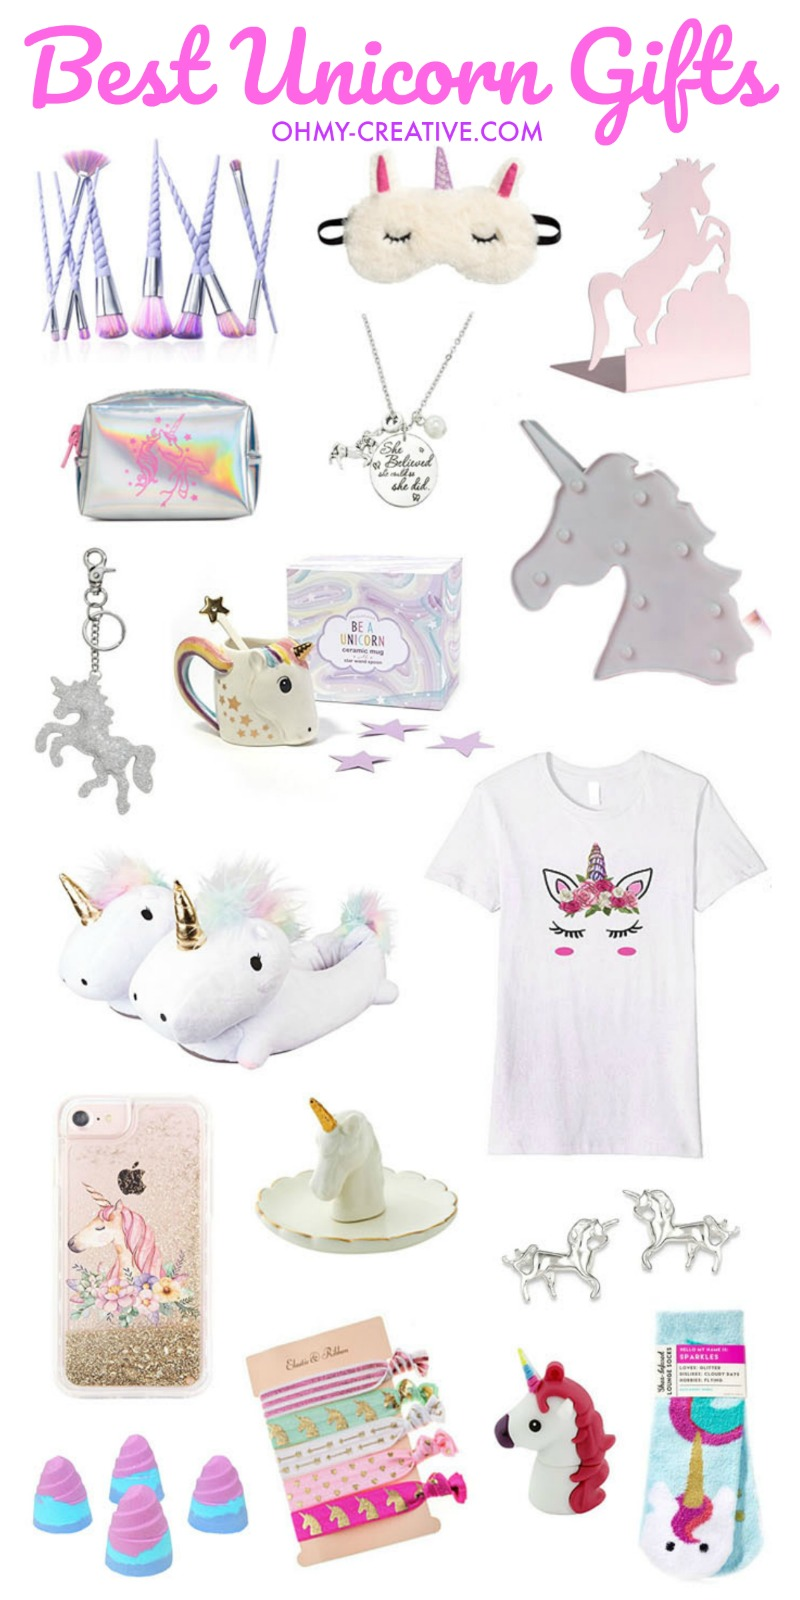 Best Unicorn Gifts Ideas | OHMY-CREATIVE.COM | Unicorn Stuff | Unicorn Things | Unicorn Items | Best Unicorn Gifts | Unicorn Shirt | Best Gifts For Girls | Gifts for Teens